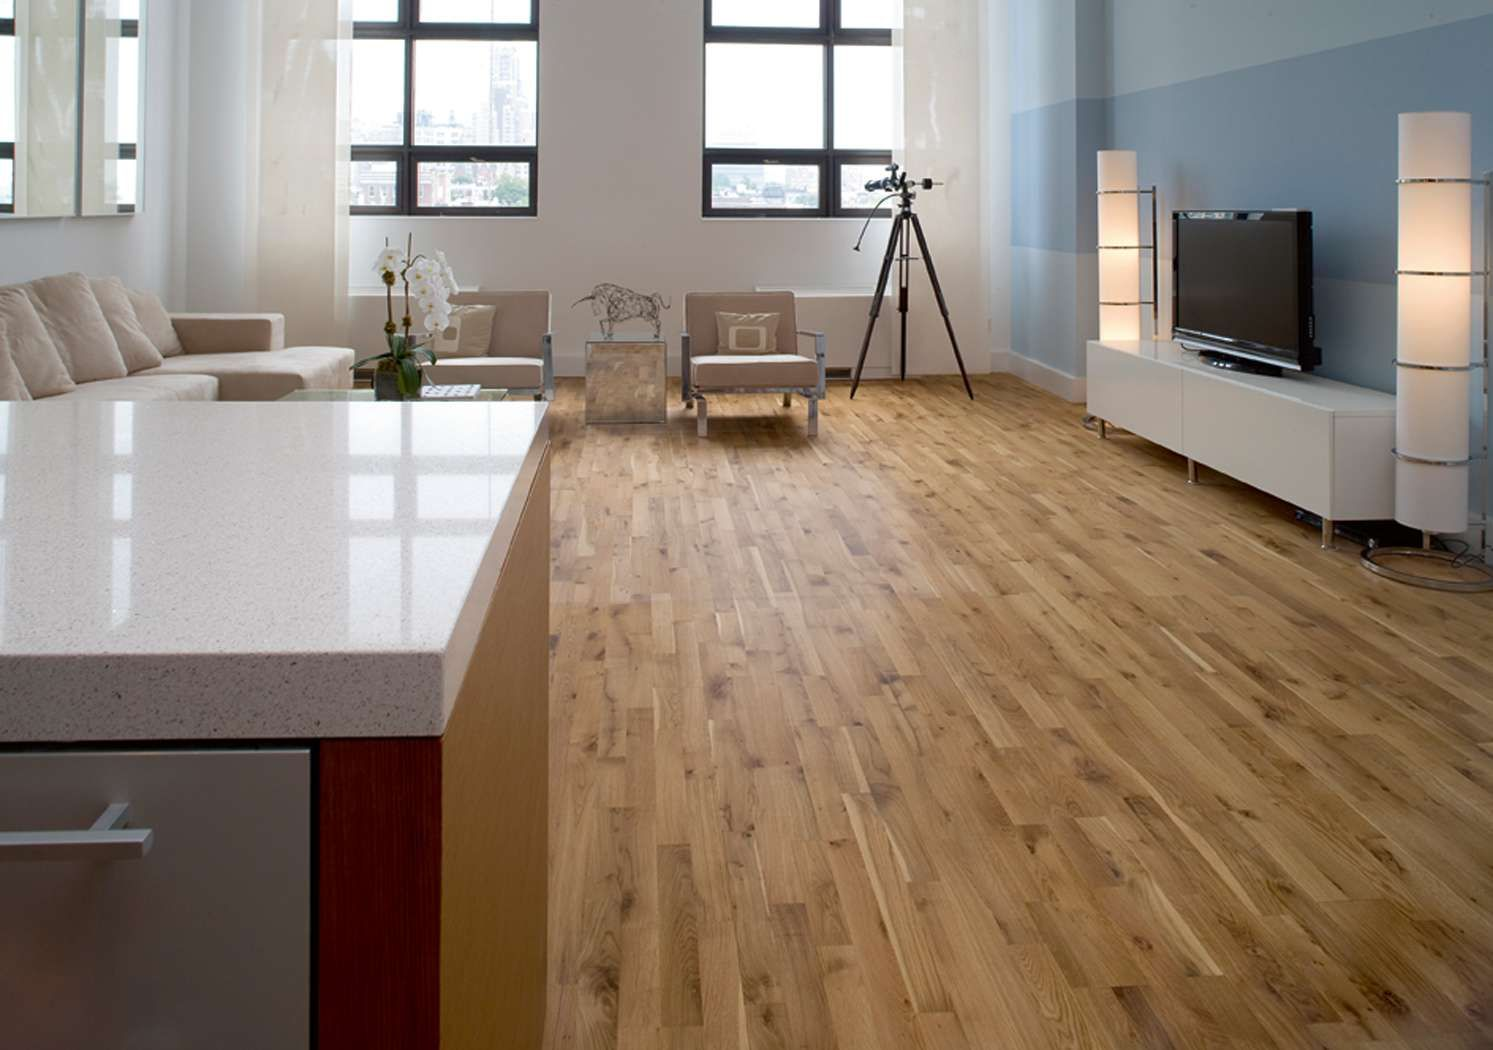 Perfect With Such A Wide Selection Of Timbers And Finishes, Natasha Brinsmead  Explains The Options For Engineered Wood Flooring Including Advice On Costs